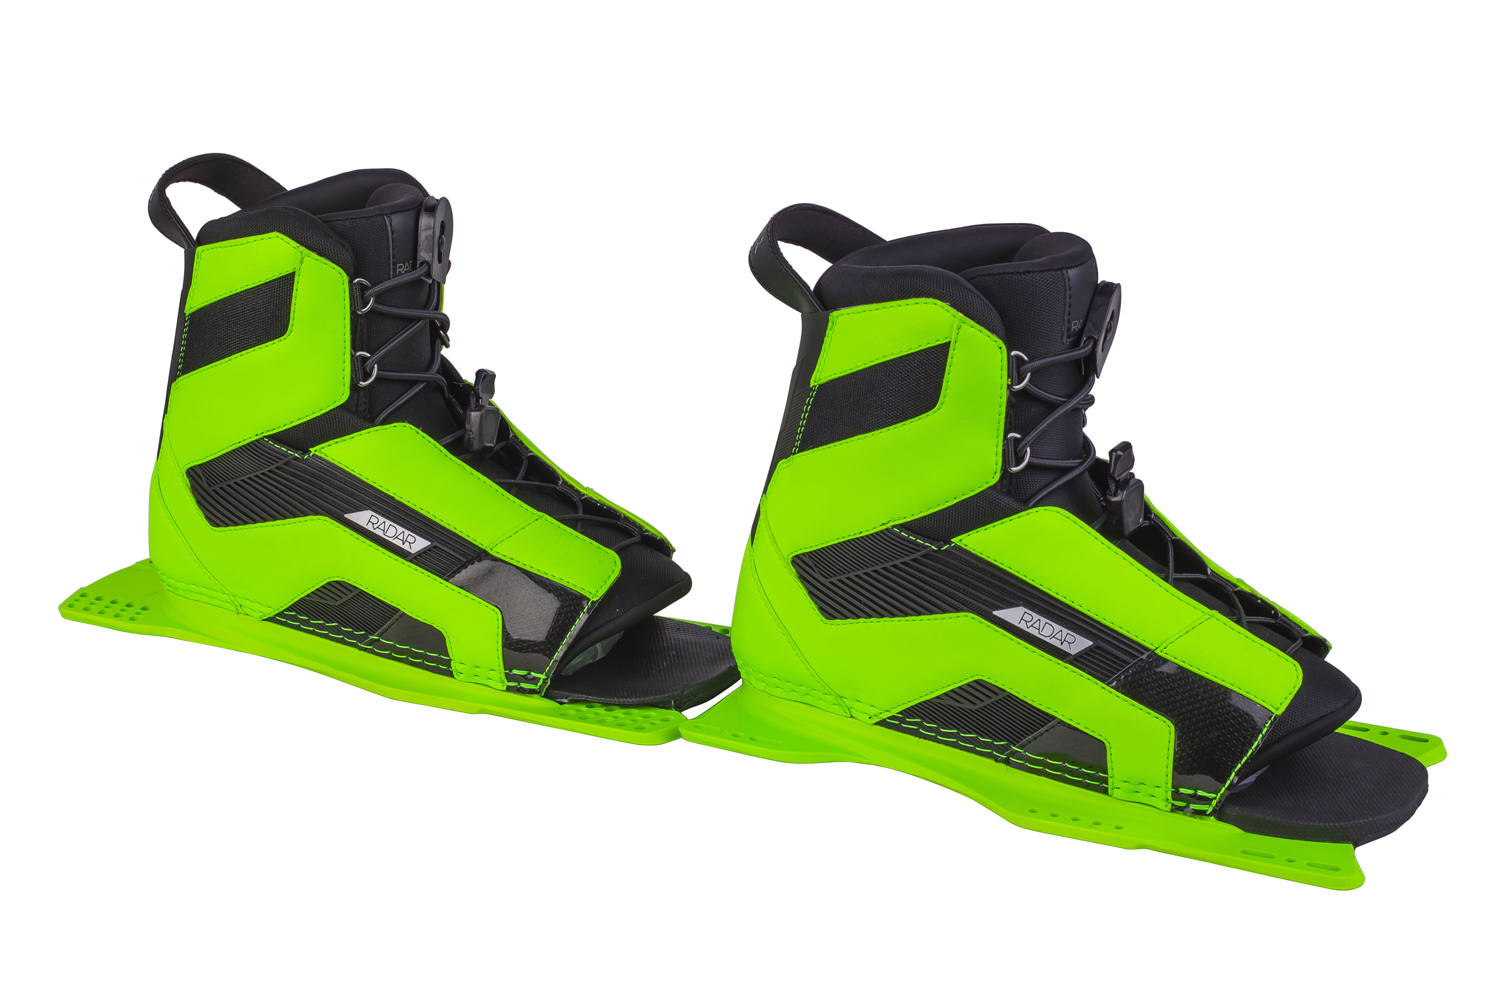 VECTOR BOOT W/FRONT FEATHER FRAME - GREEN RADAR 2016